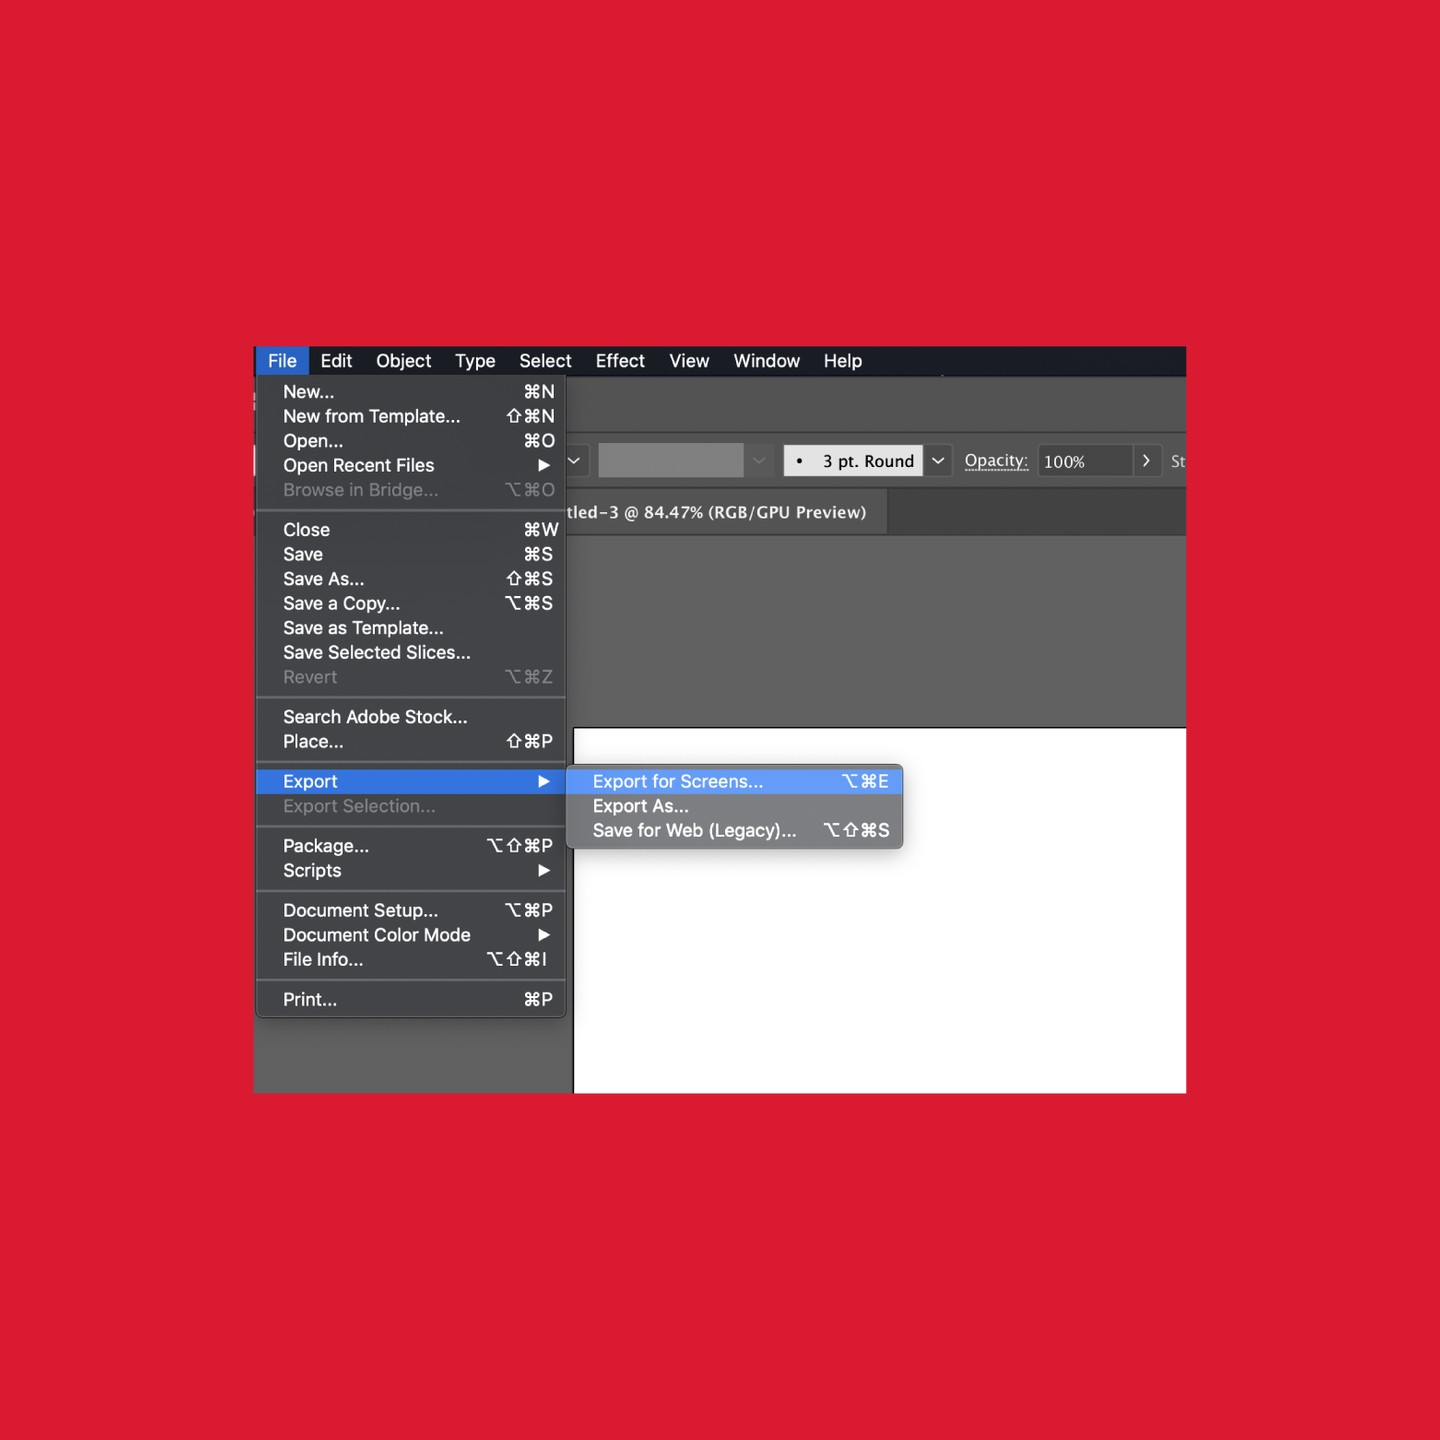 How to Export for Web using Illustrator